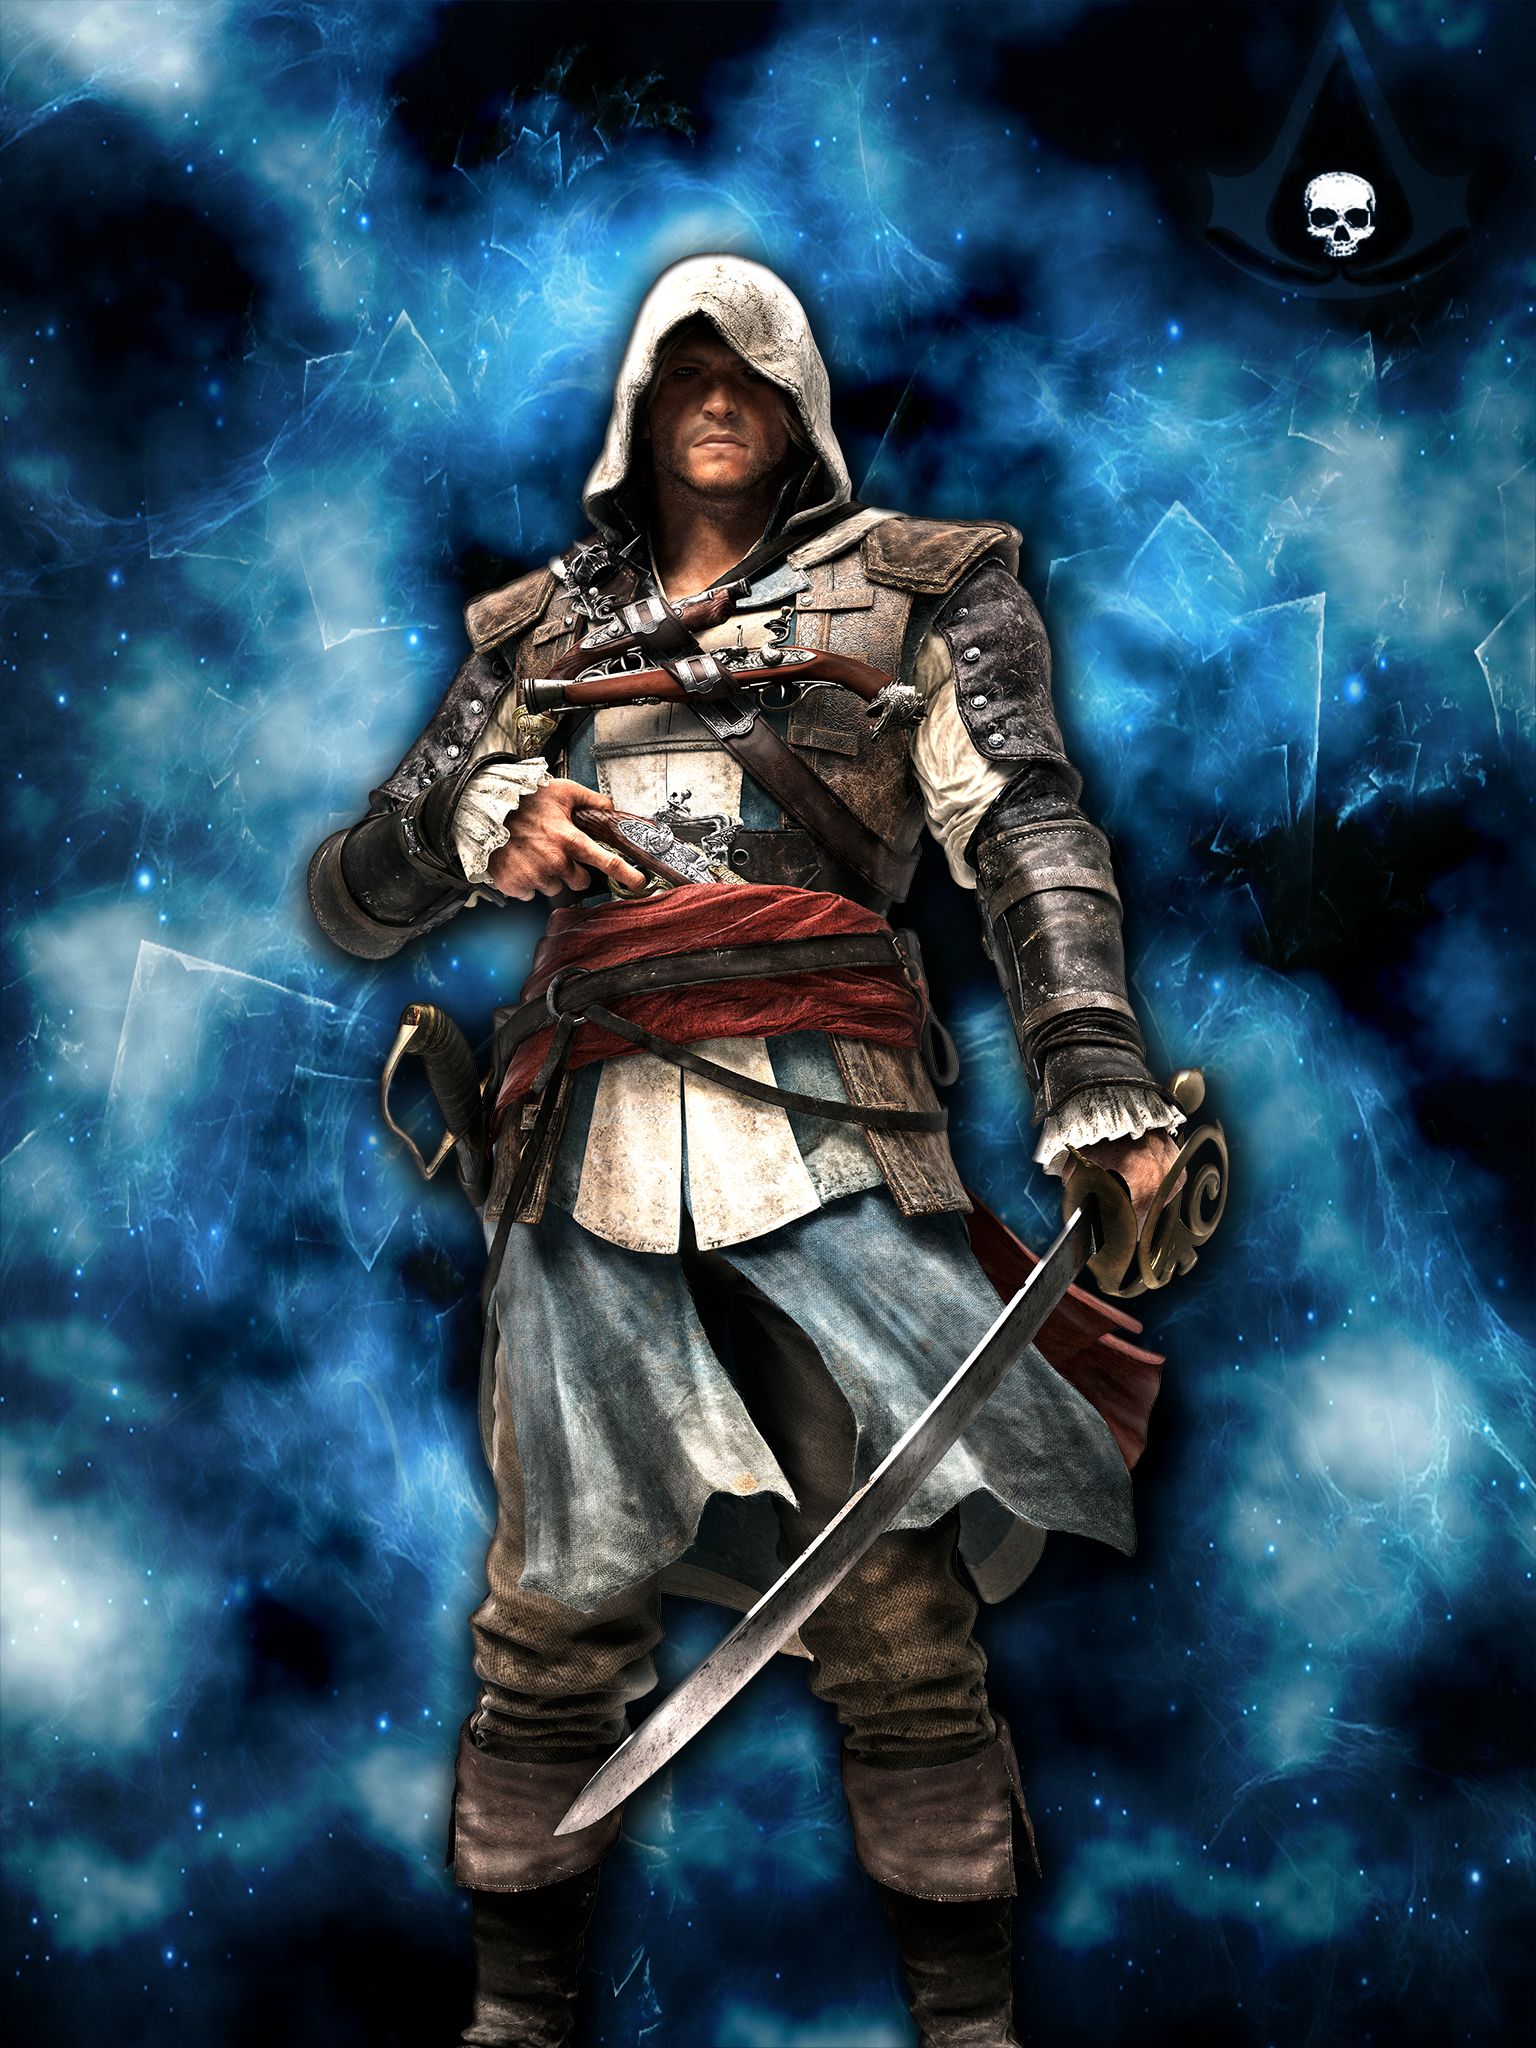 Assassins creed iv iphone wallpaper logo by theeviln on deviantart assassins creed iv iphone wallpaper logo by theeviln voltagebd Images